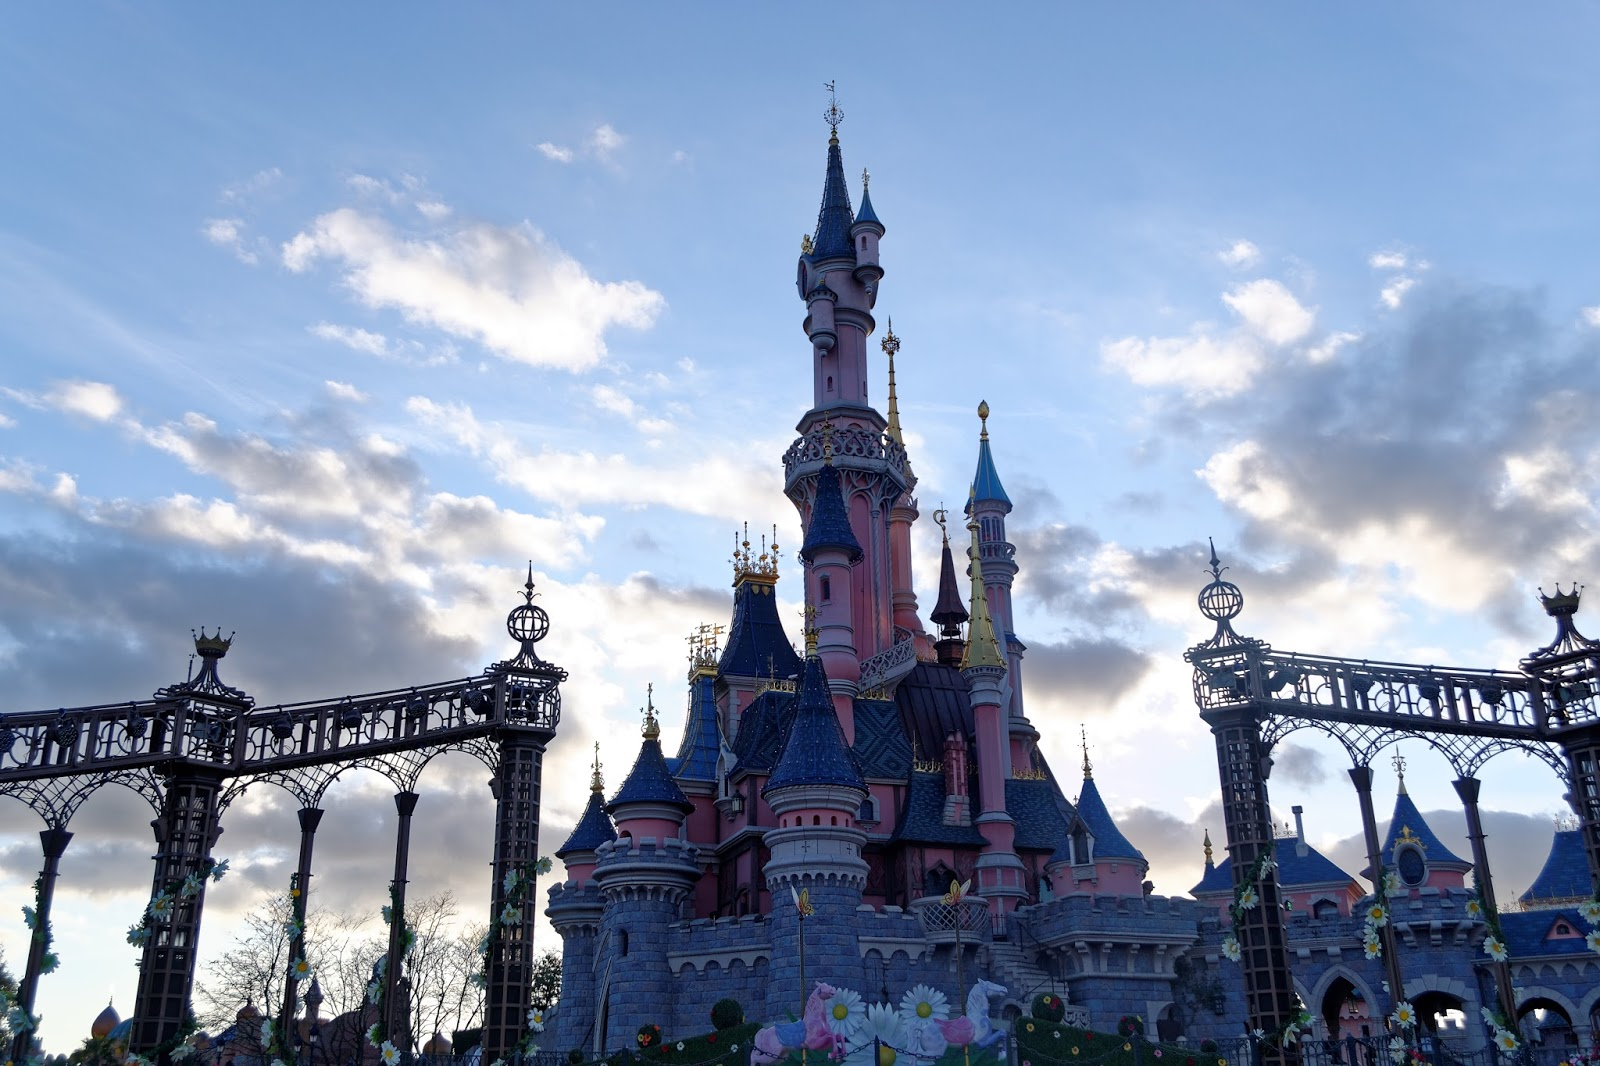 https://ldmailys.blogspot.com/2017/09/disneyland-paris.html